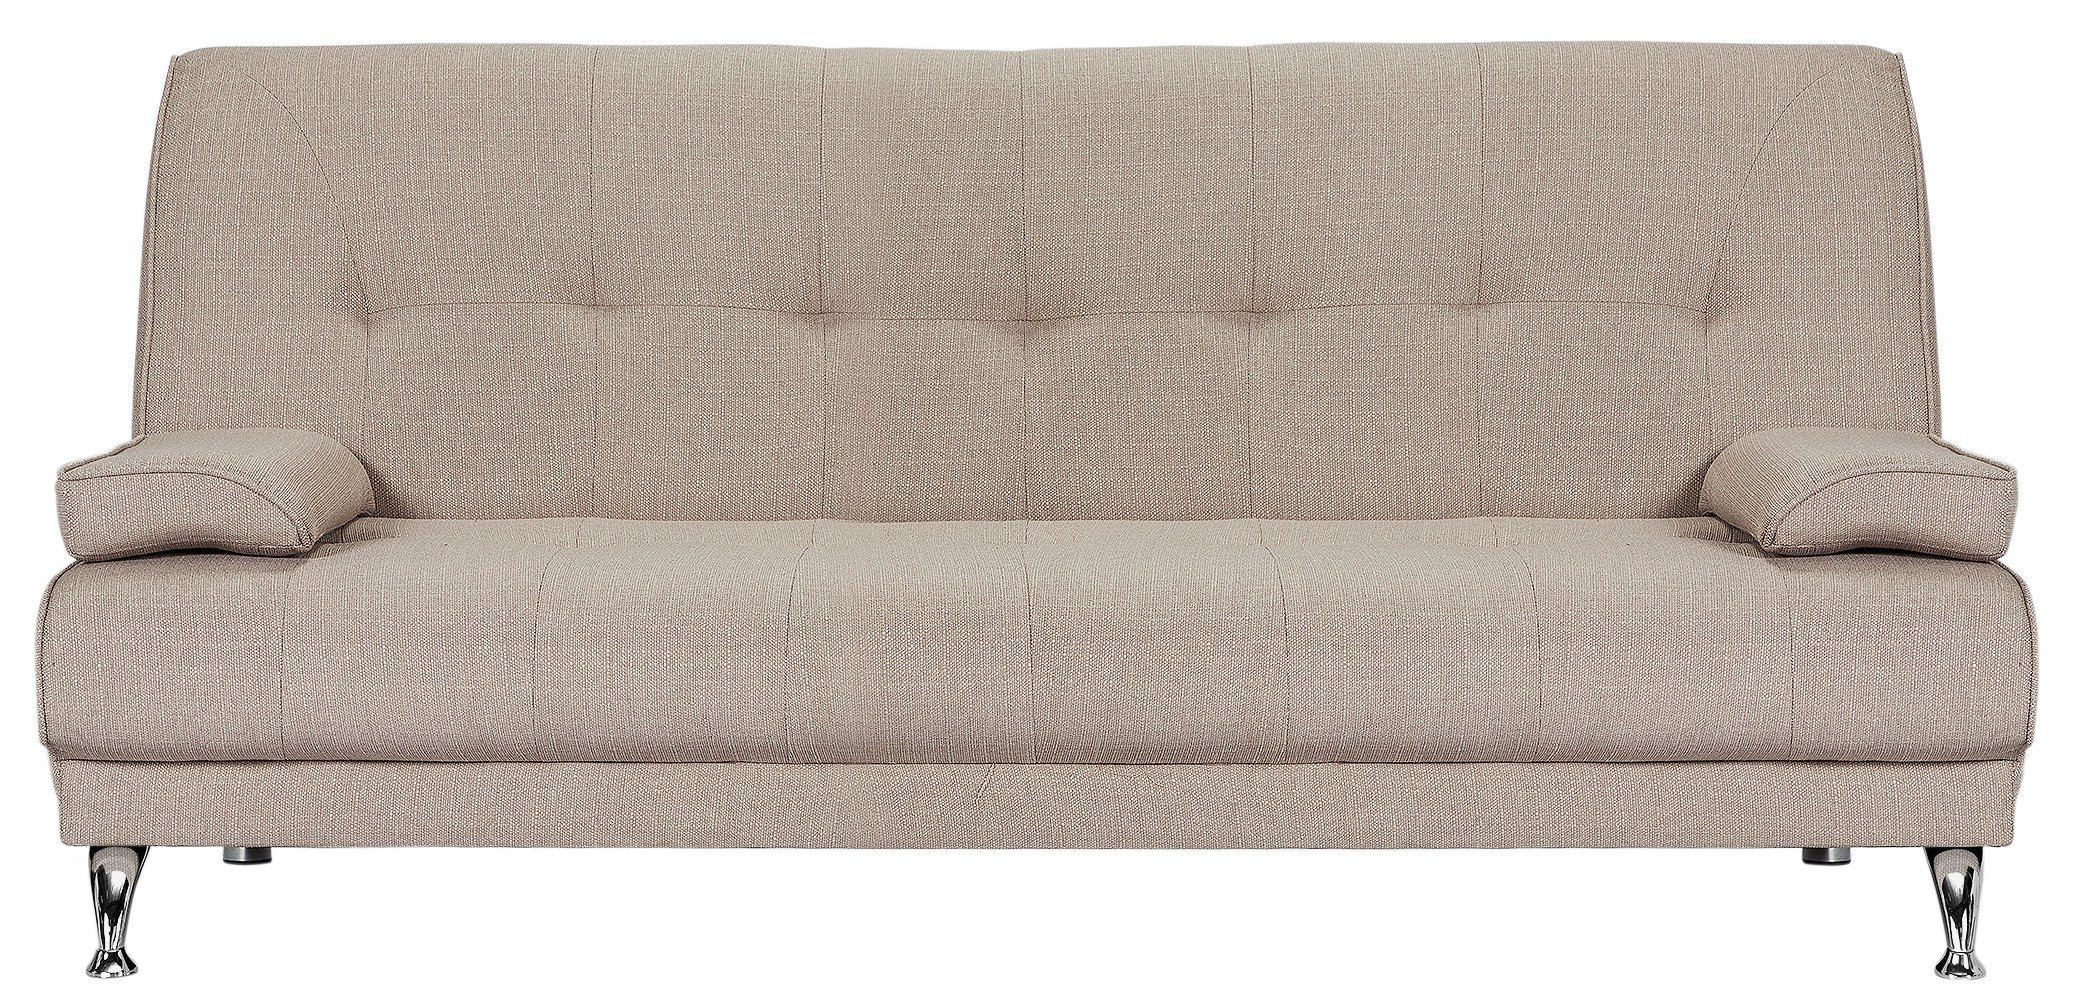 Buy Argos Home Sicily 2 Seater Clic Clac Sofa Bed - Natural | Sofa